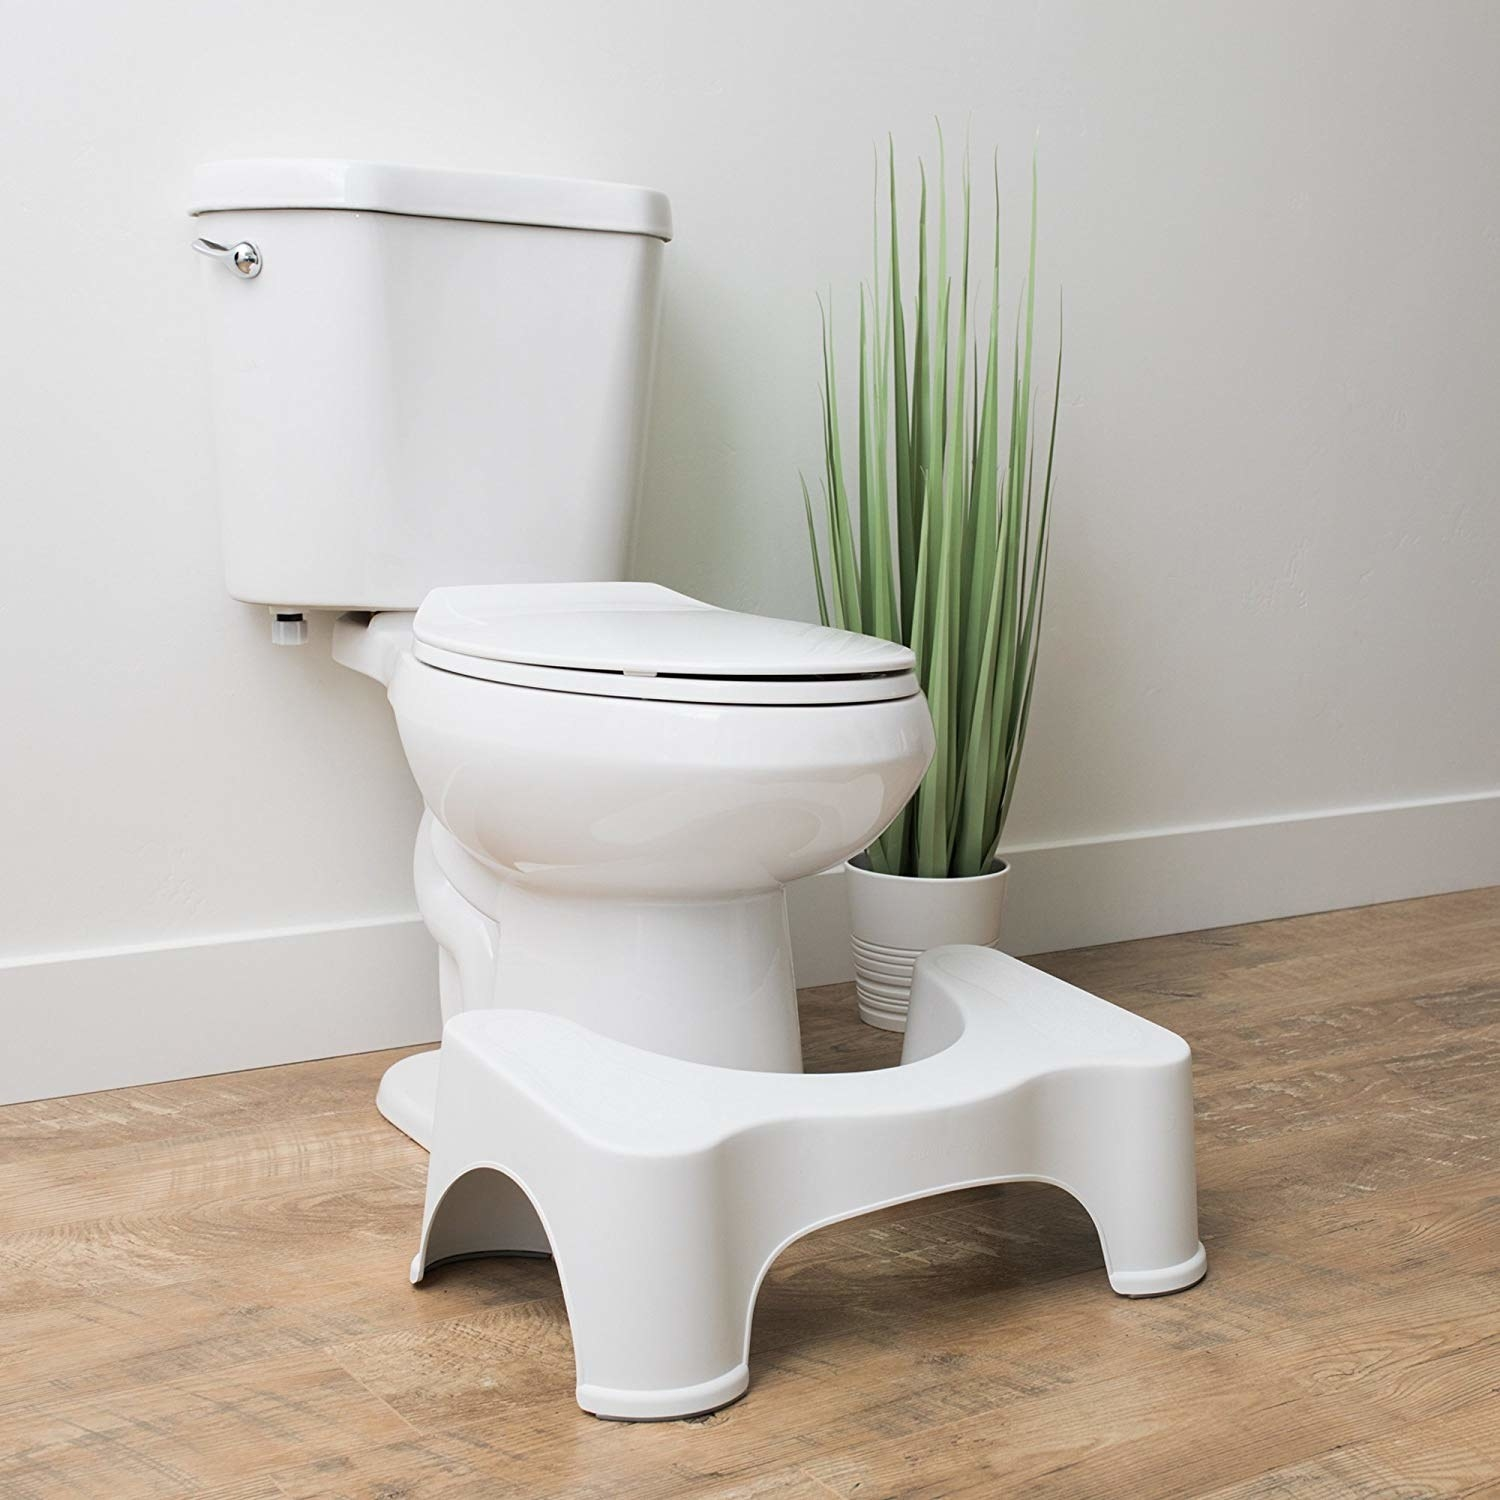 white stool that wraps around a toilet with space for your feet